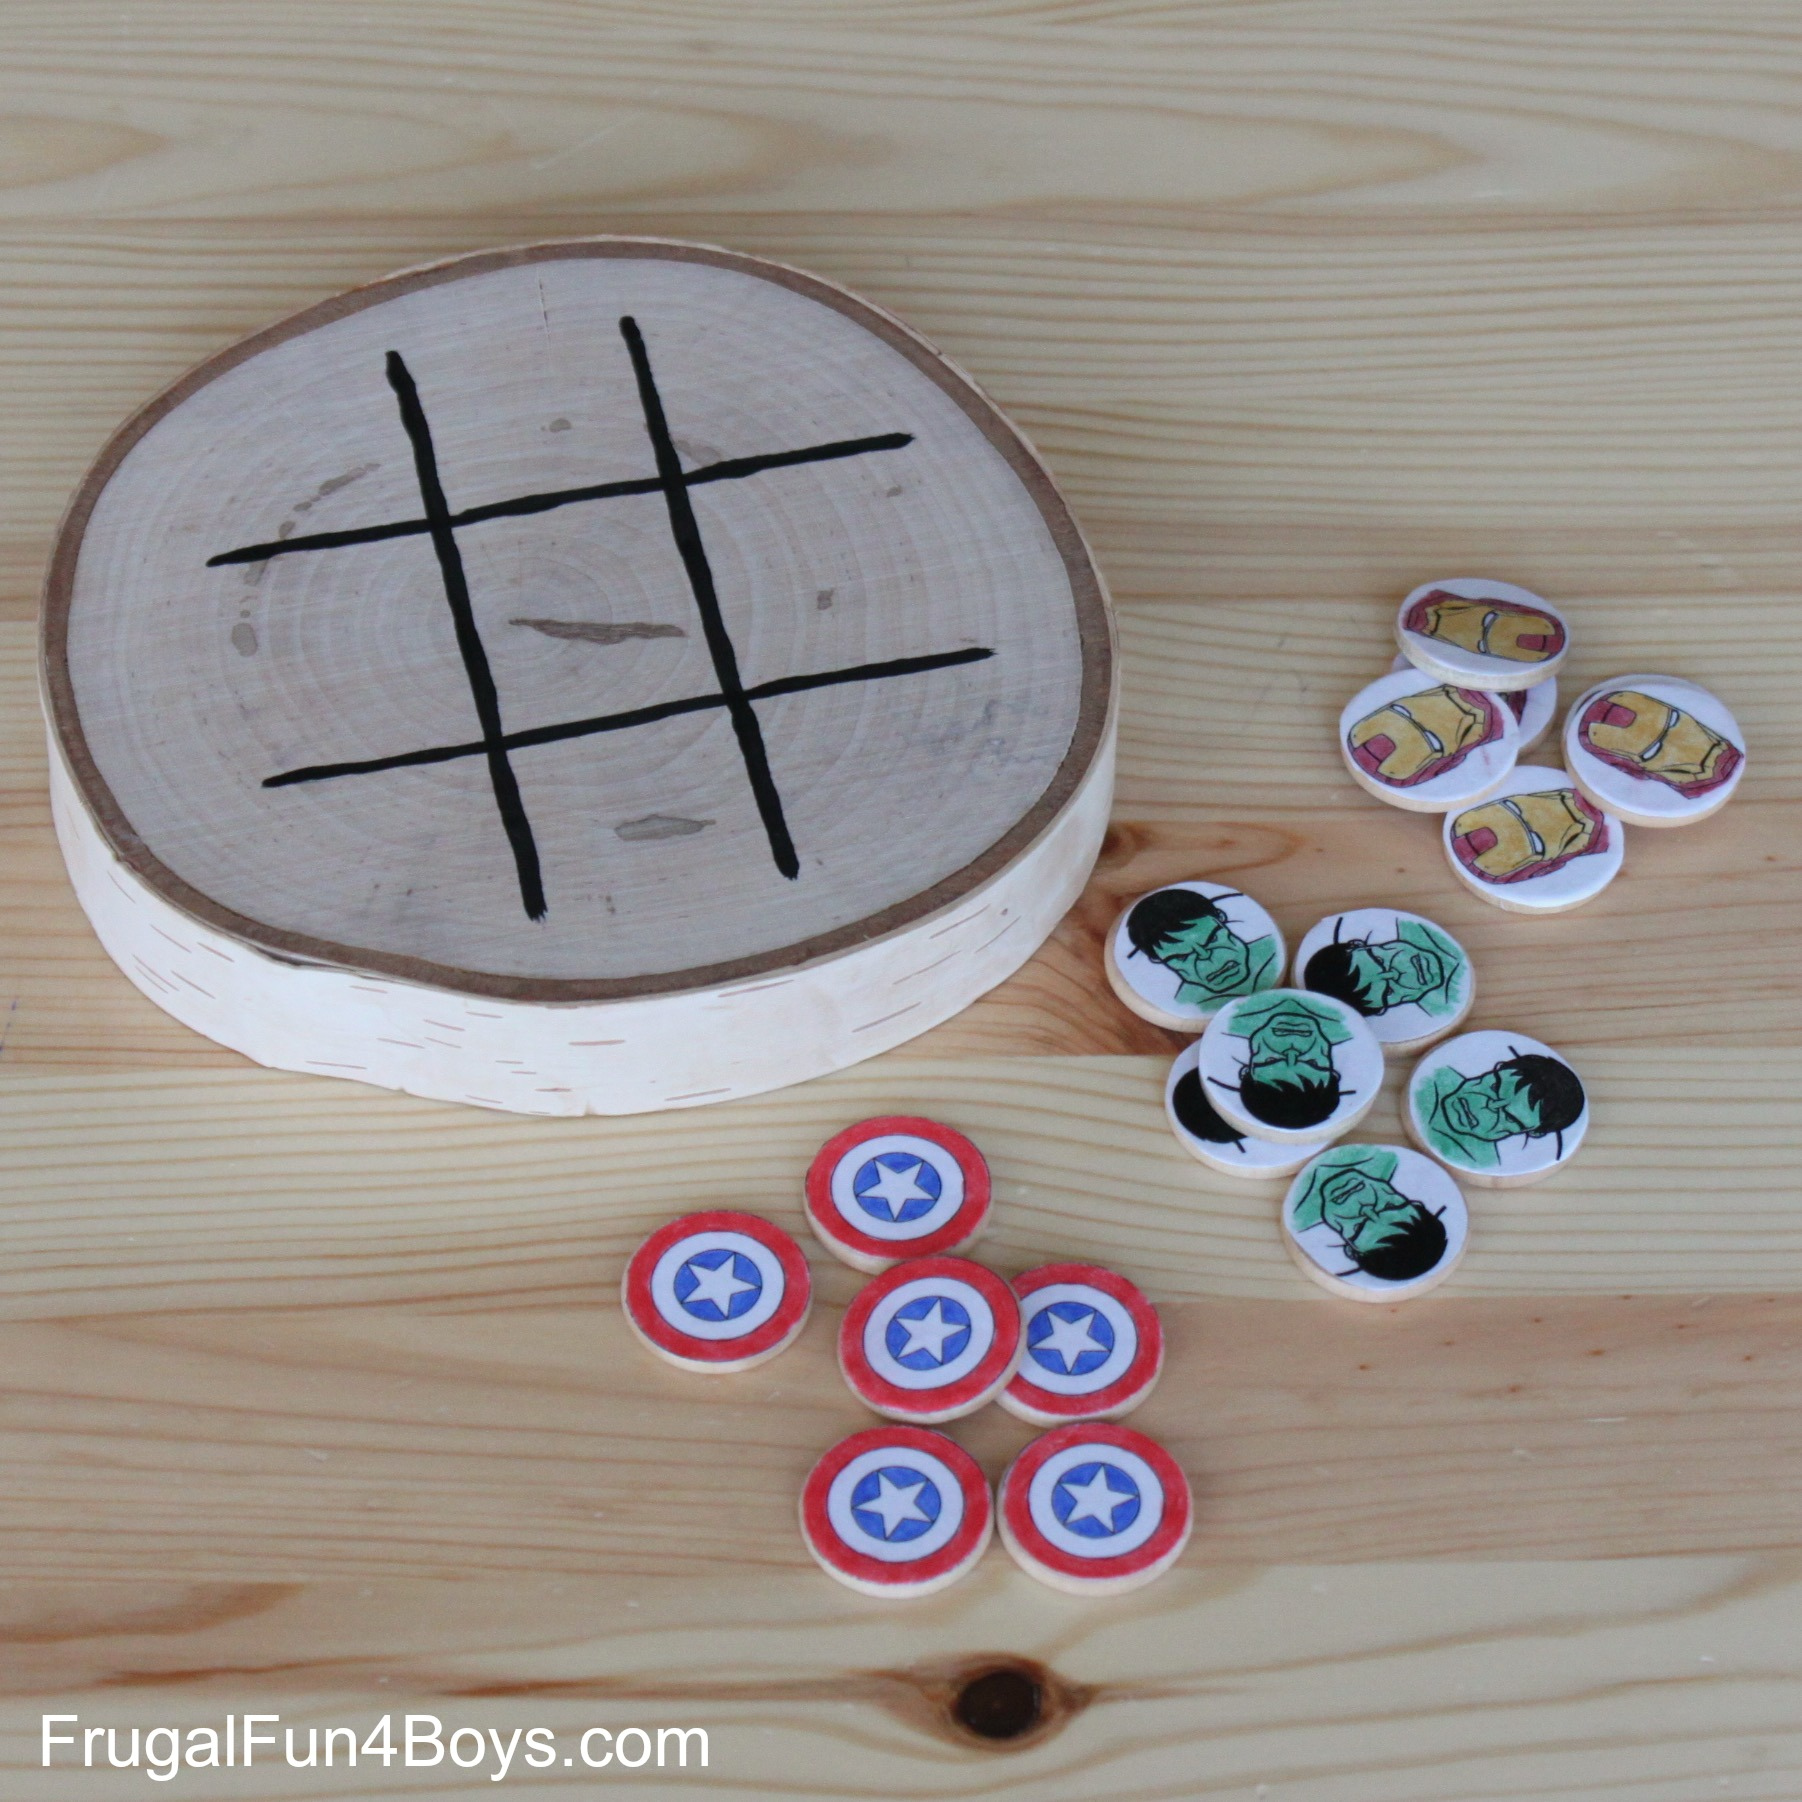 DIY Avengers Tic Tac Toe Game